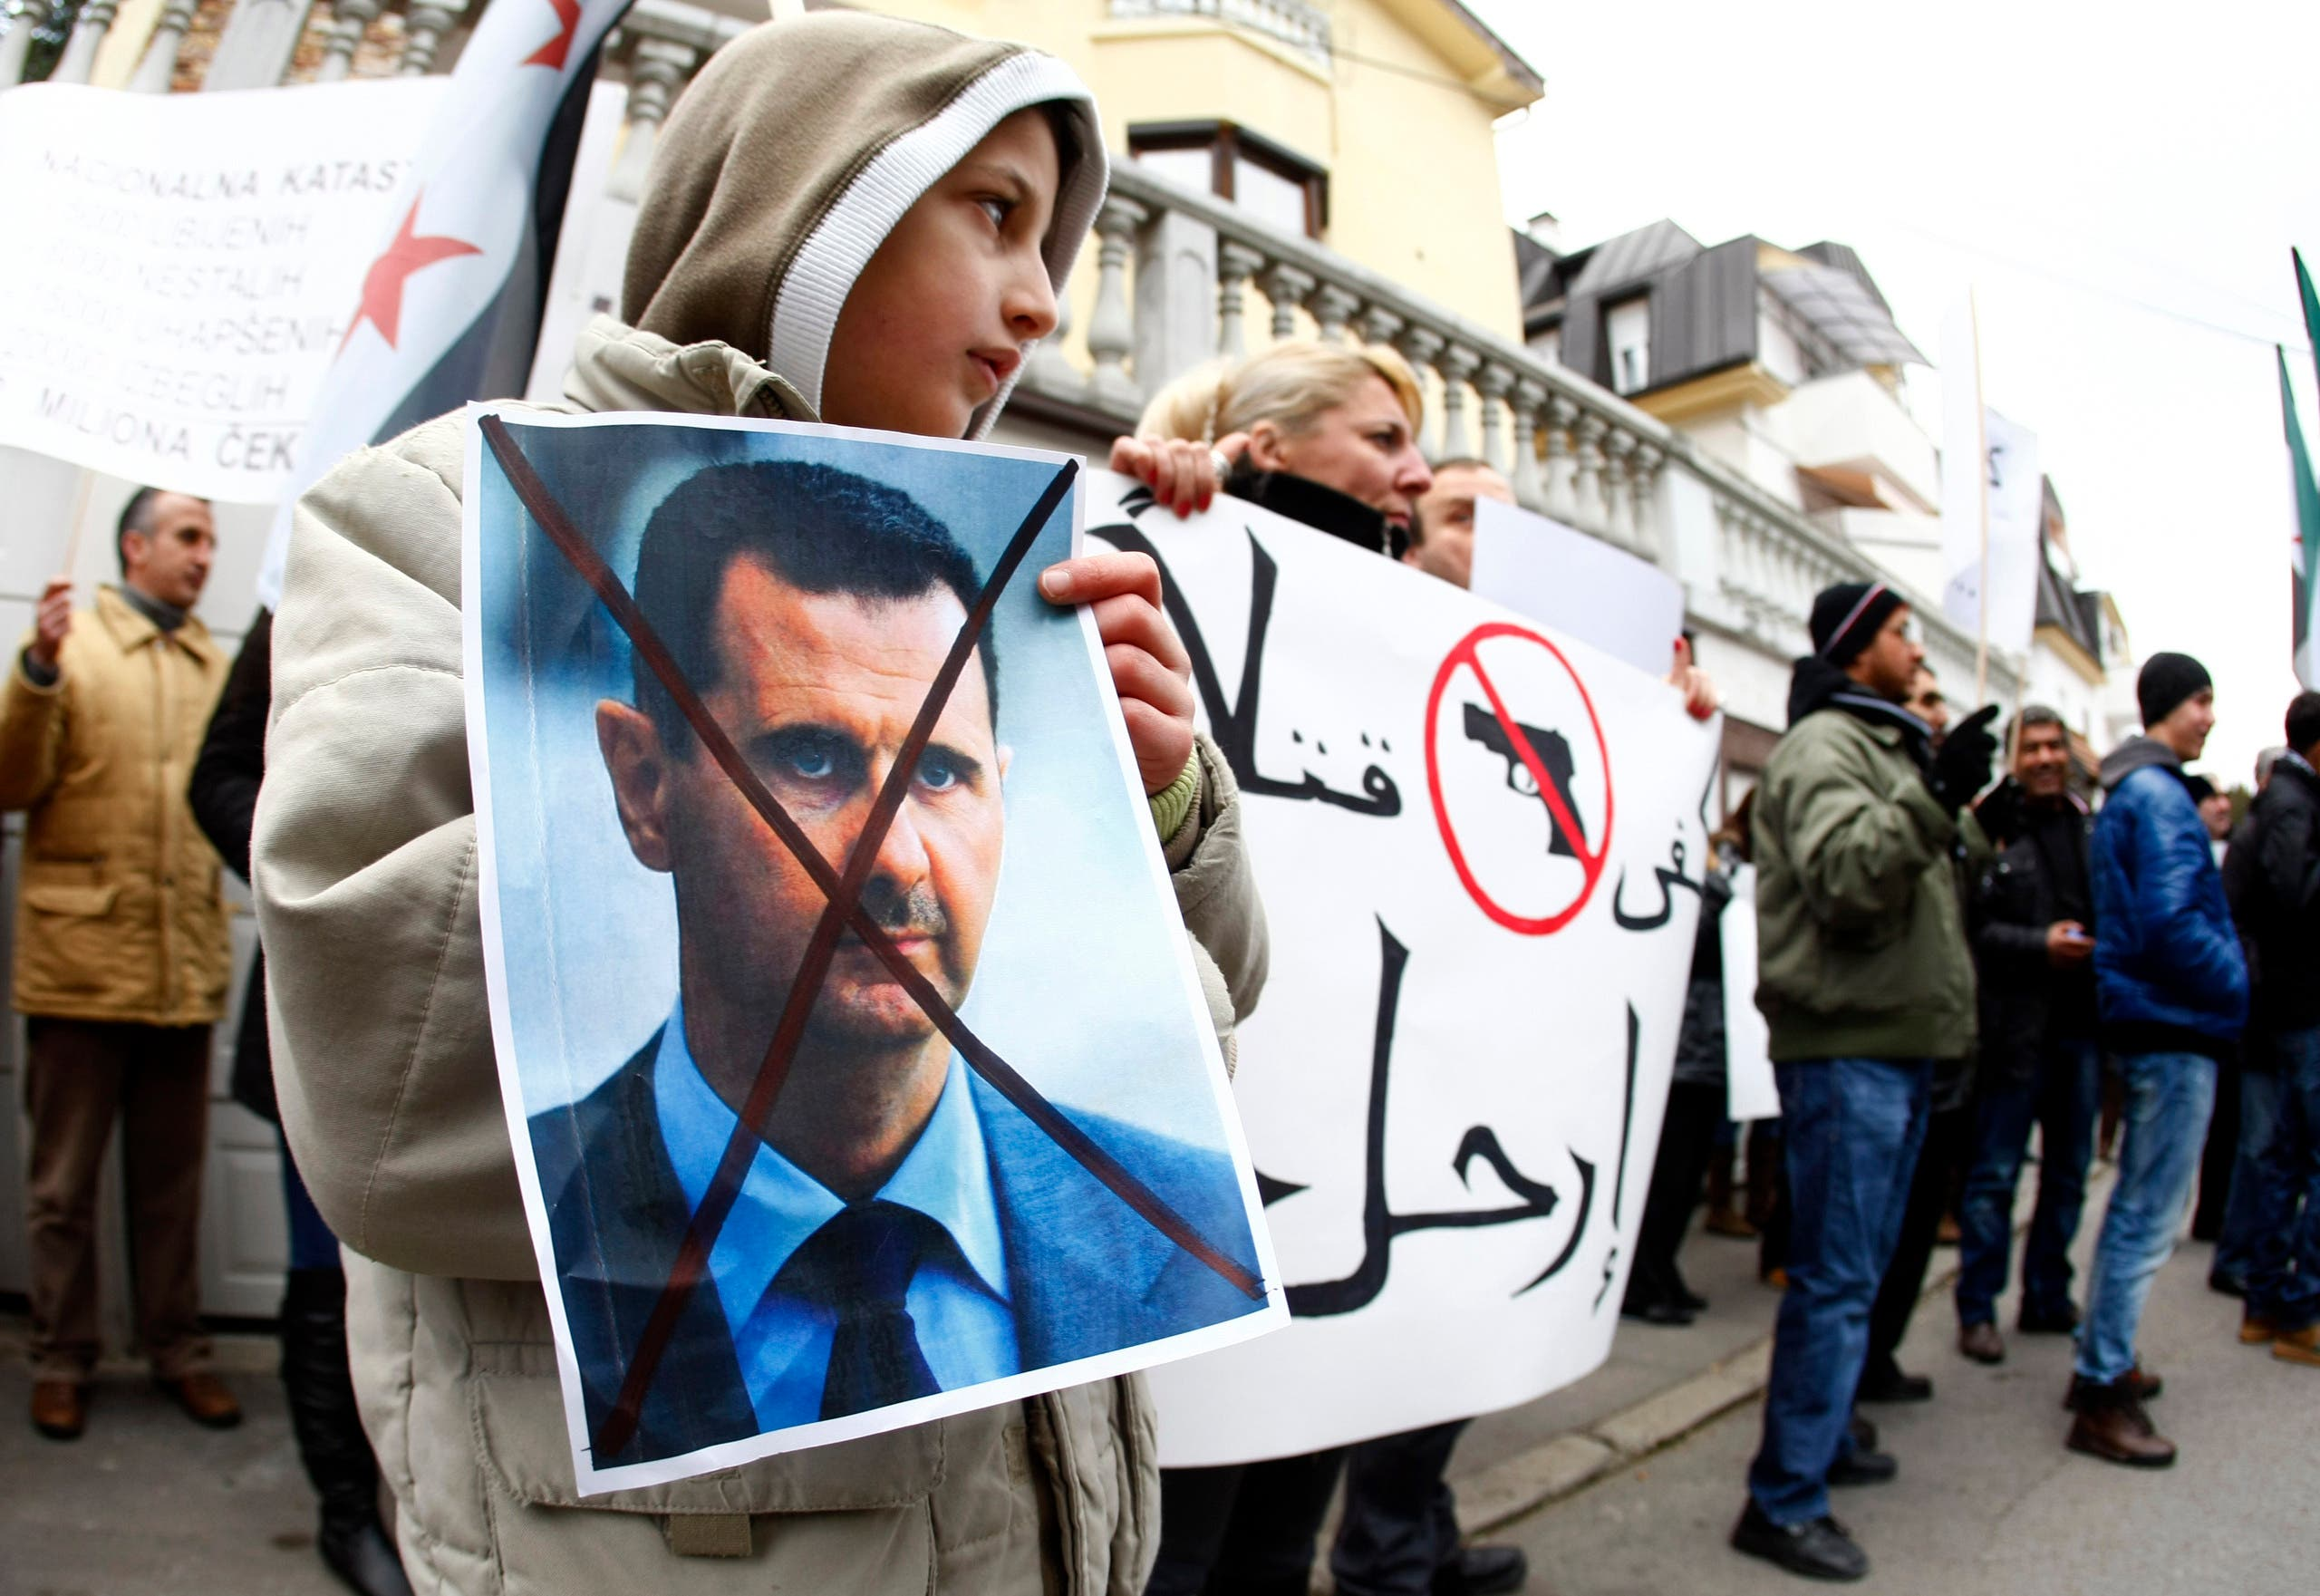 A Syrian immigrant holds a poster of Syrian President Bashar al-Assad during a protest against his regime in front of the Syrian embassy in Belgrade December 23, 2011. (File photo: Reuters)